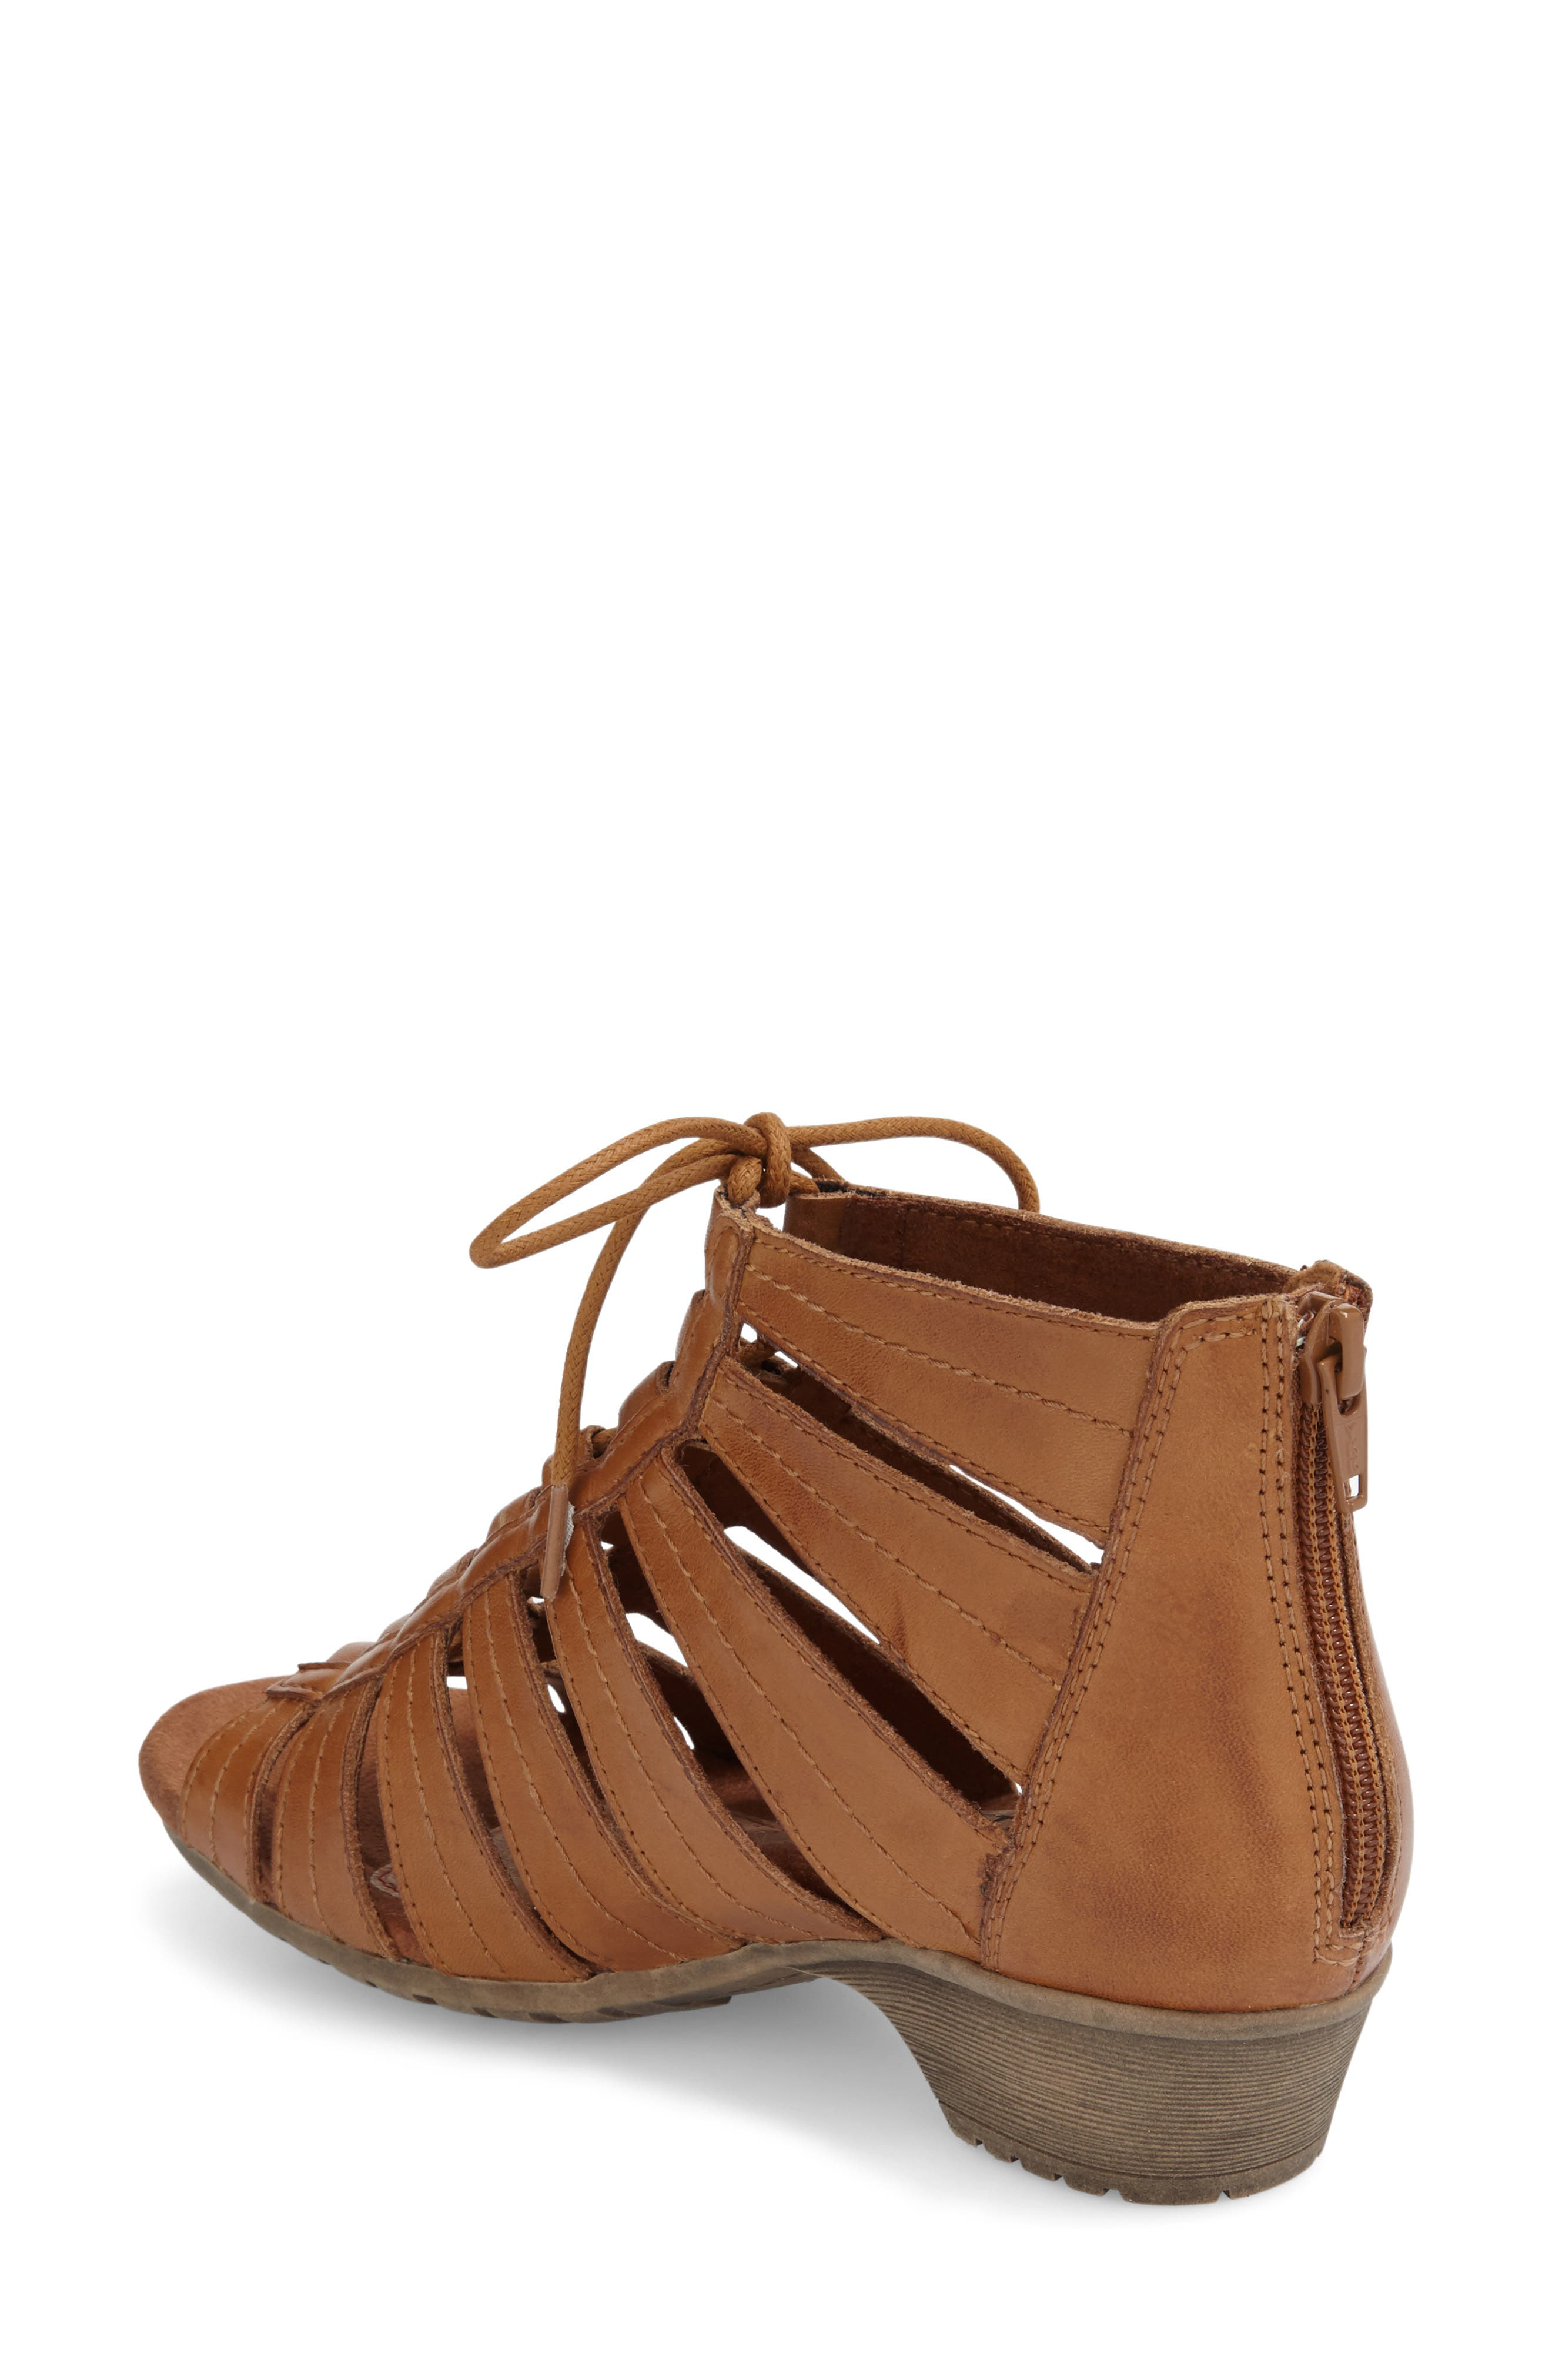 'Gabby' Lace-Up Sandal,                             Alternate thumbnail 21, color,